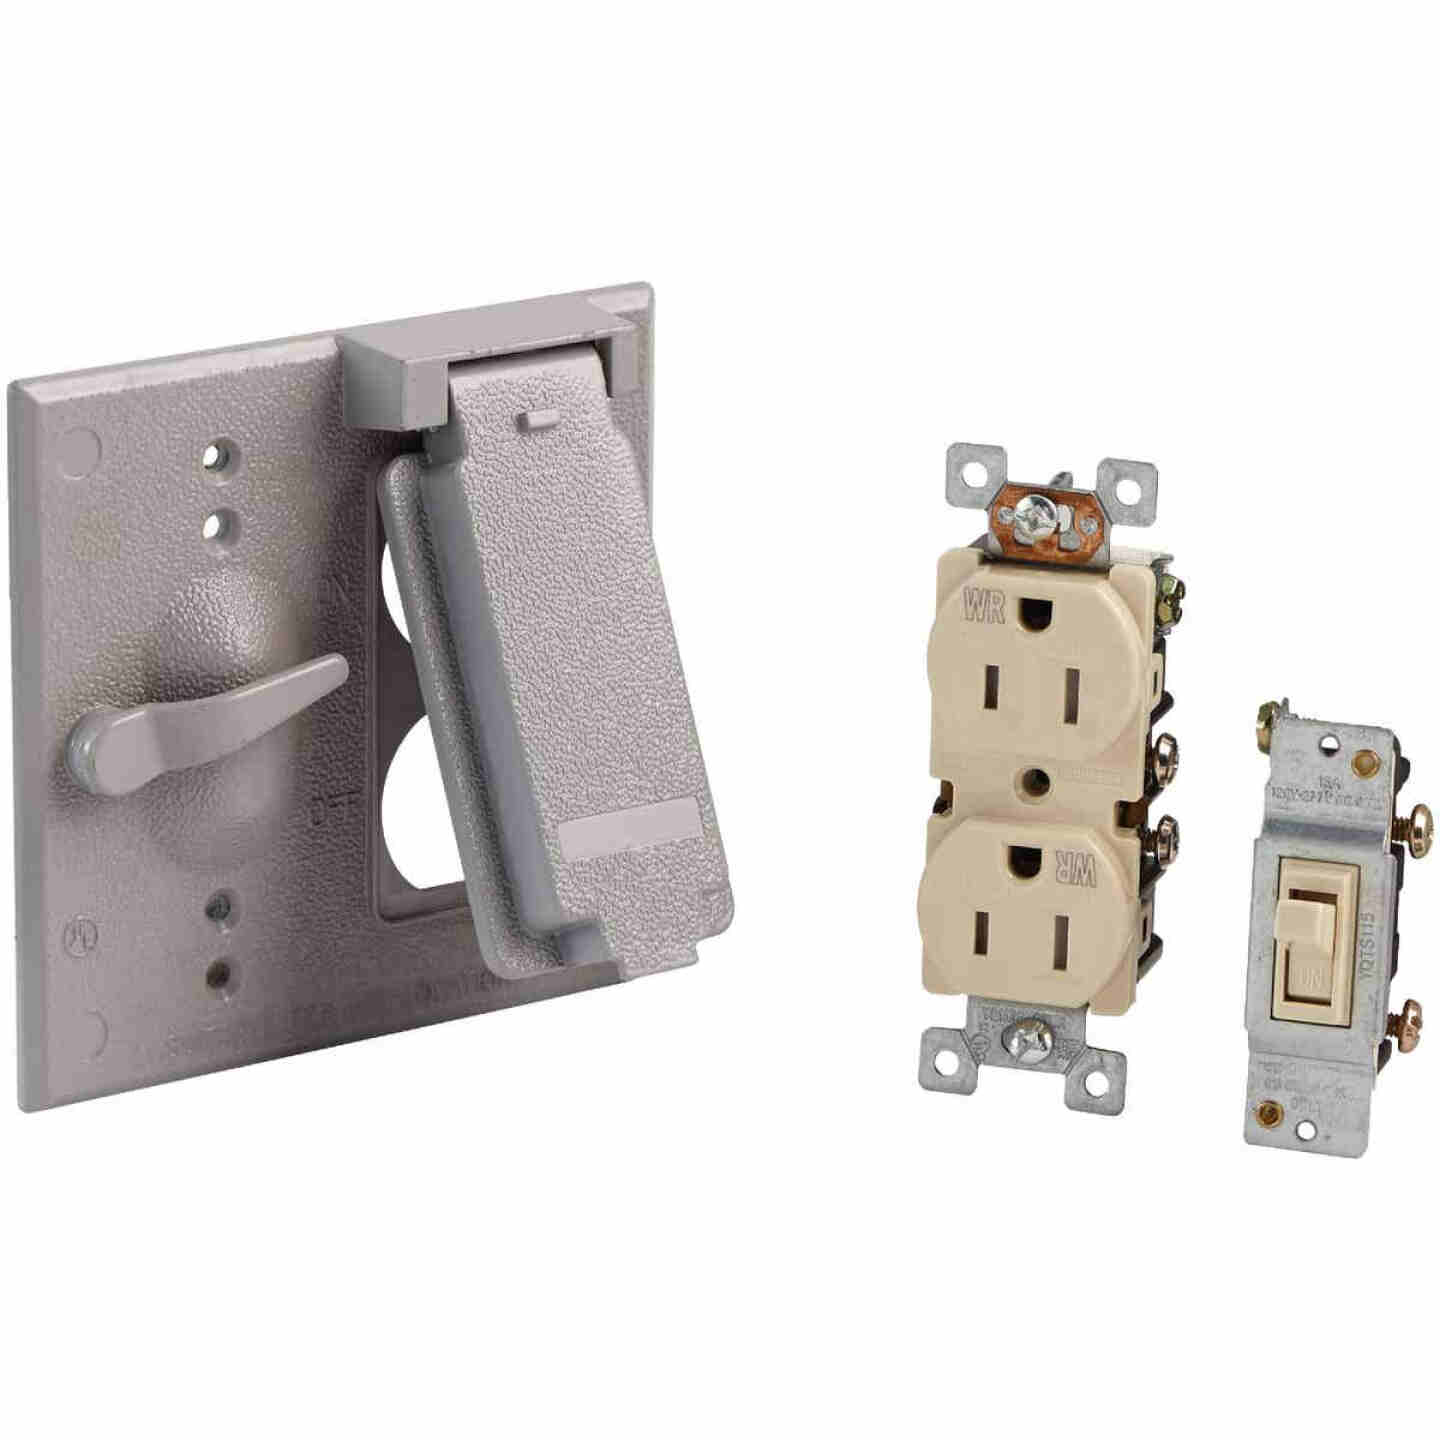 Bell 2-Gang Vertical Mount Die-Cast Metal Gray Outdoor Outlet Cover Image 1